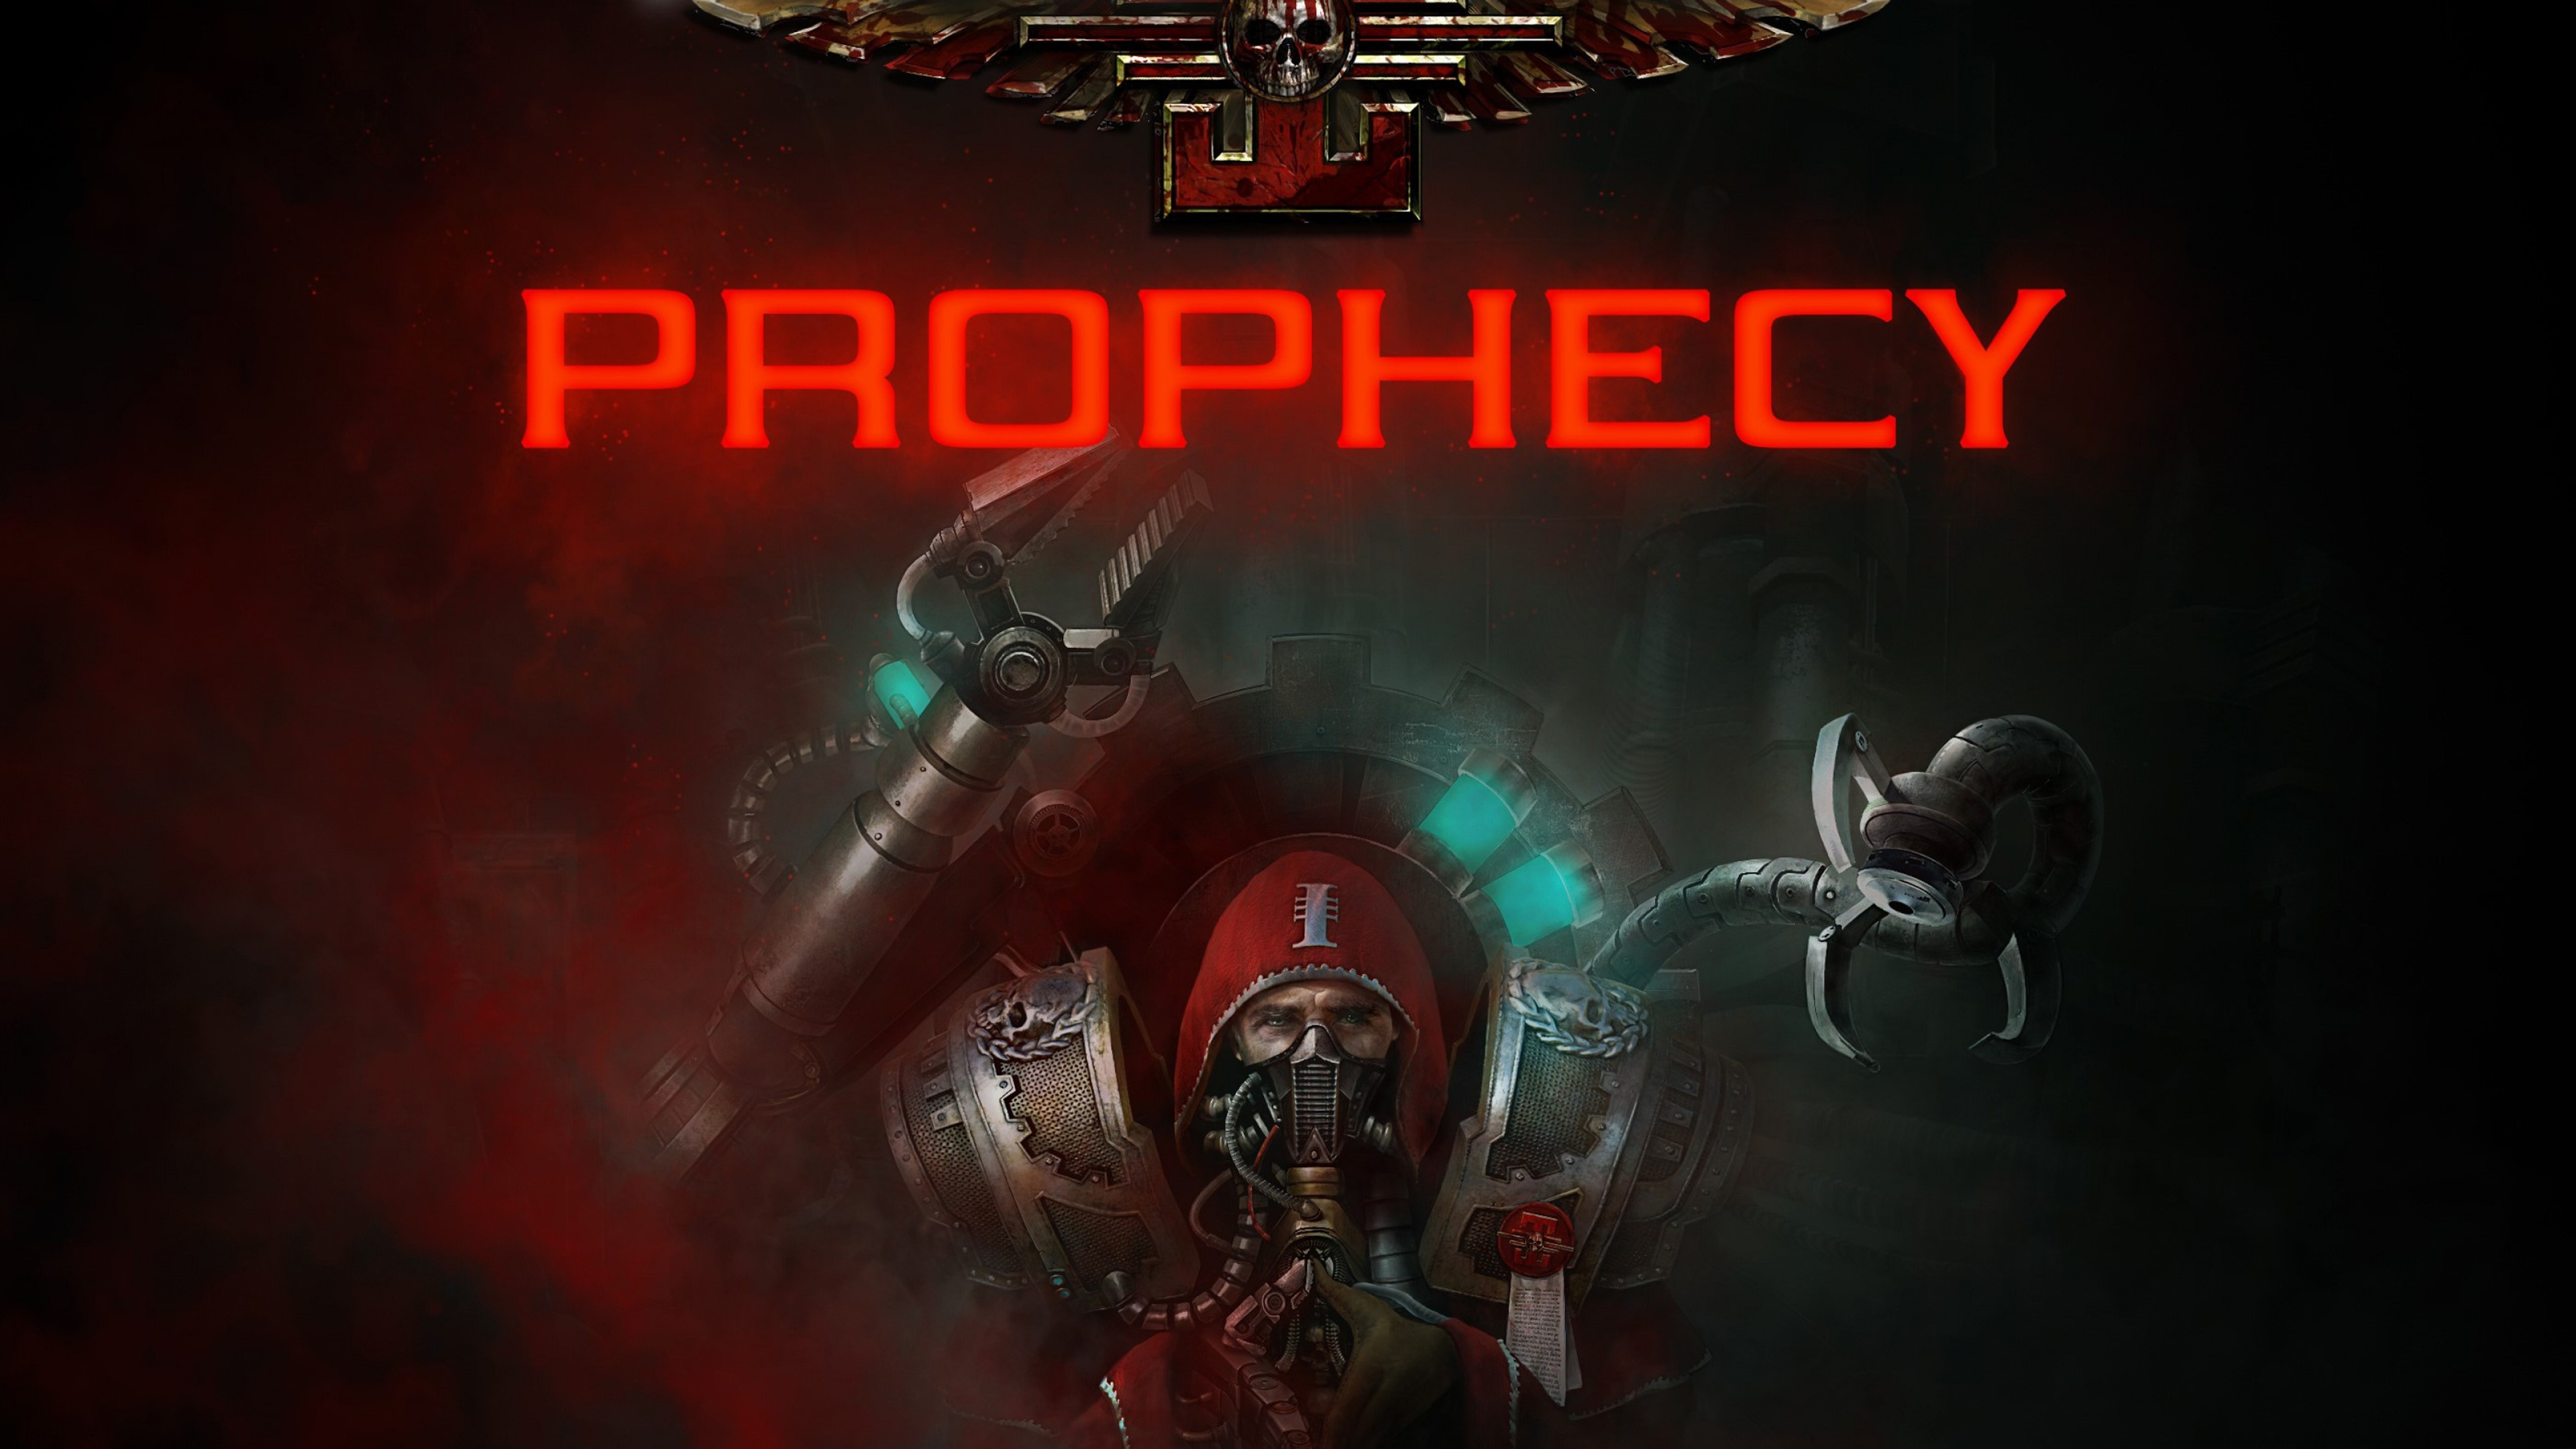 Prophecy Warhammer 40K Inquisitor Wallpaper HD Games 4K 3840x2160